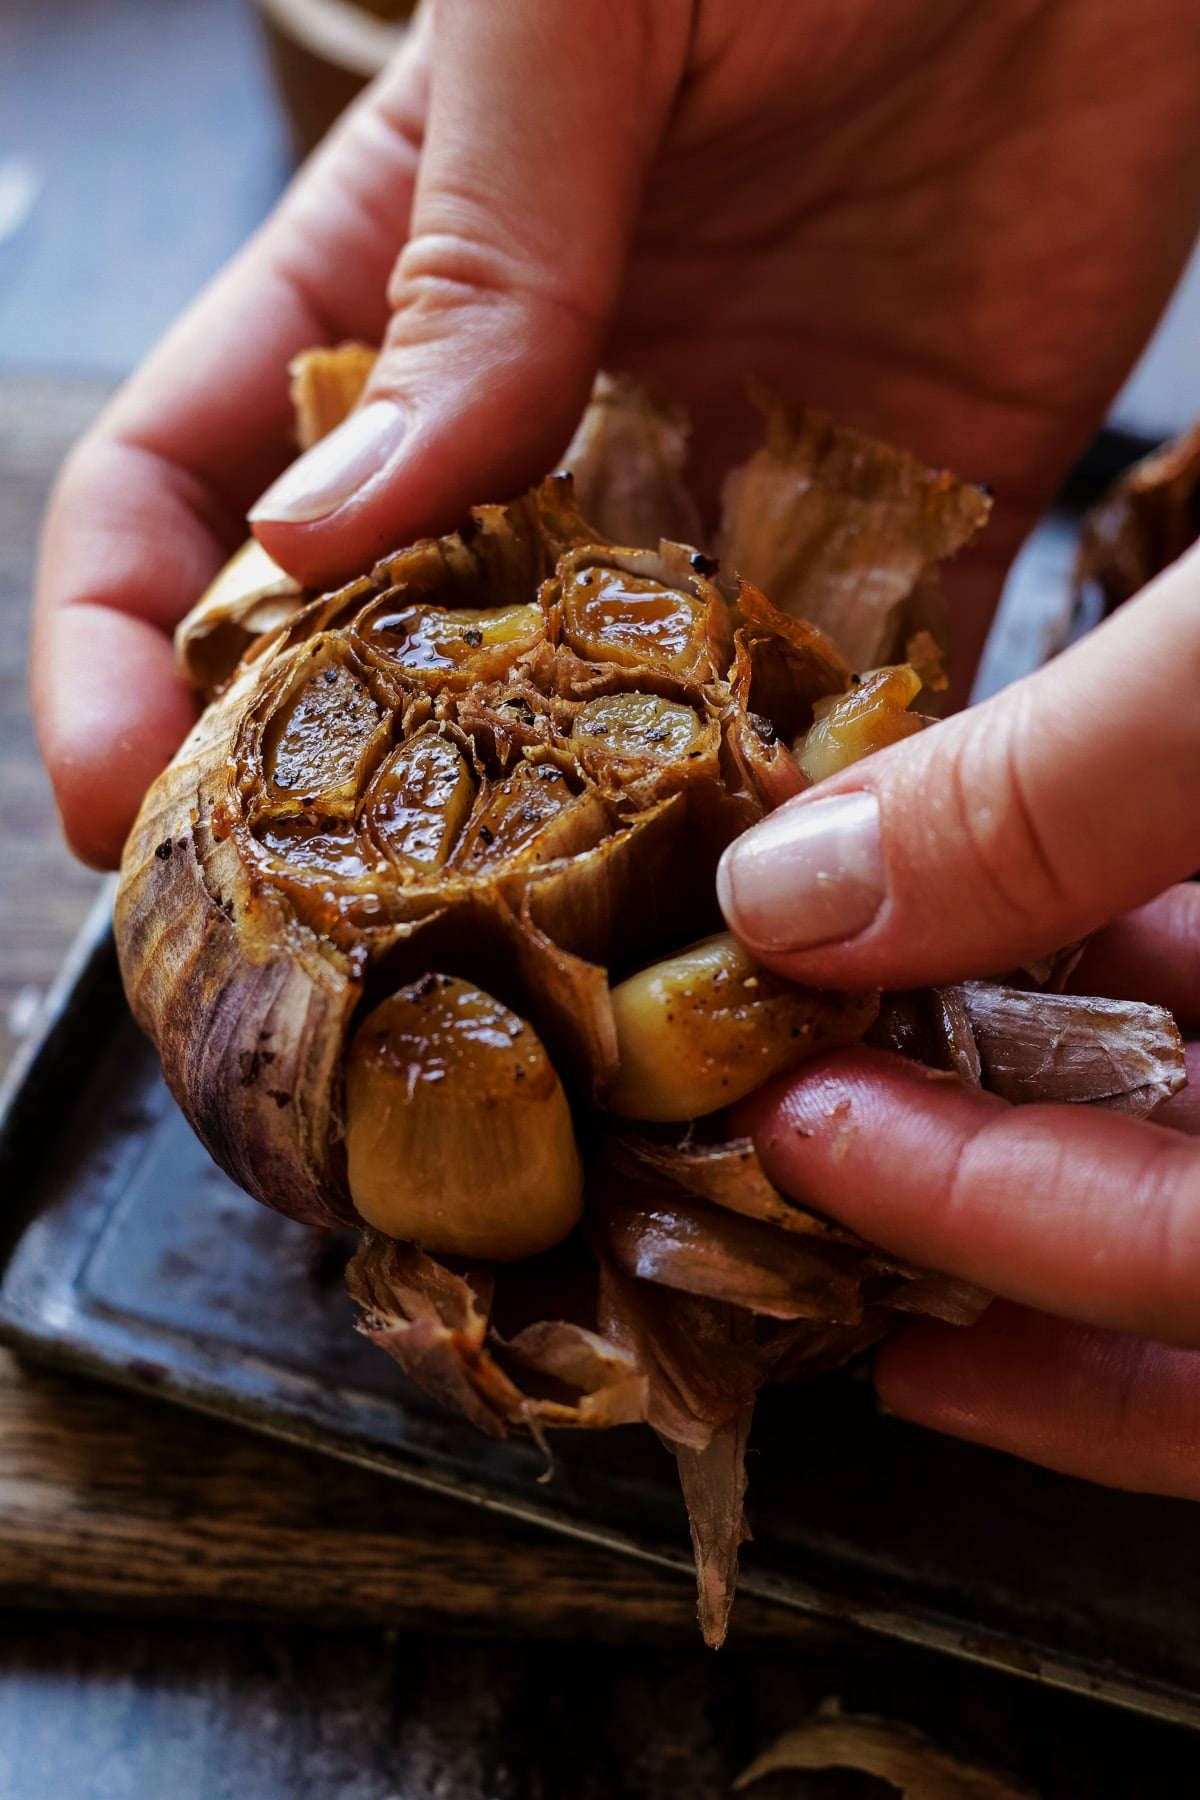 Peeling roasted garlic by hand.